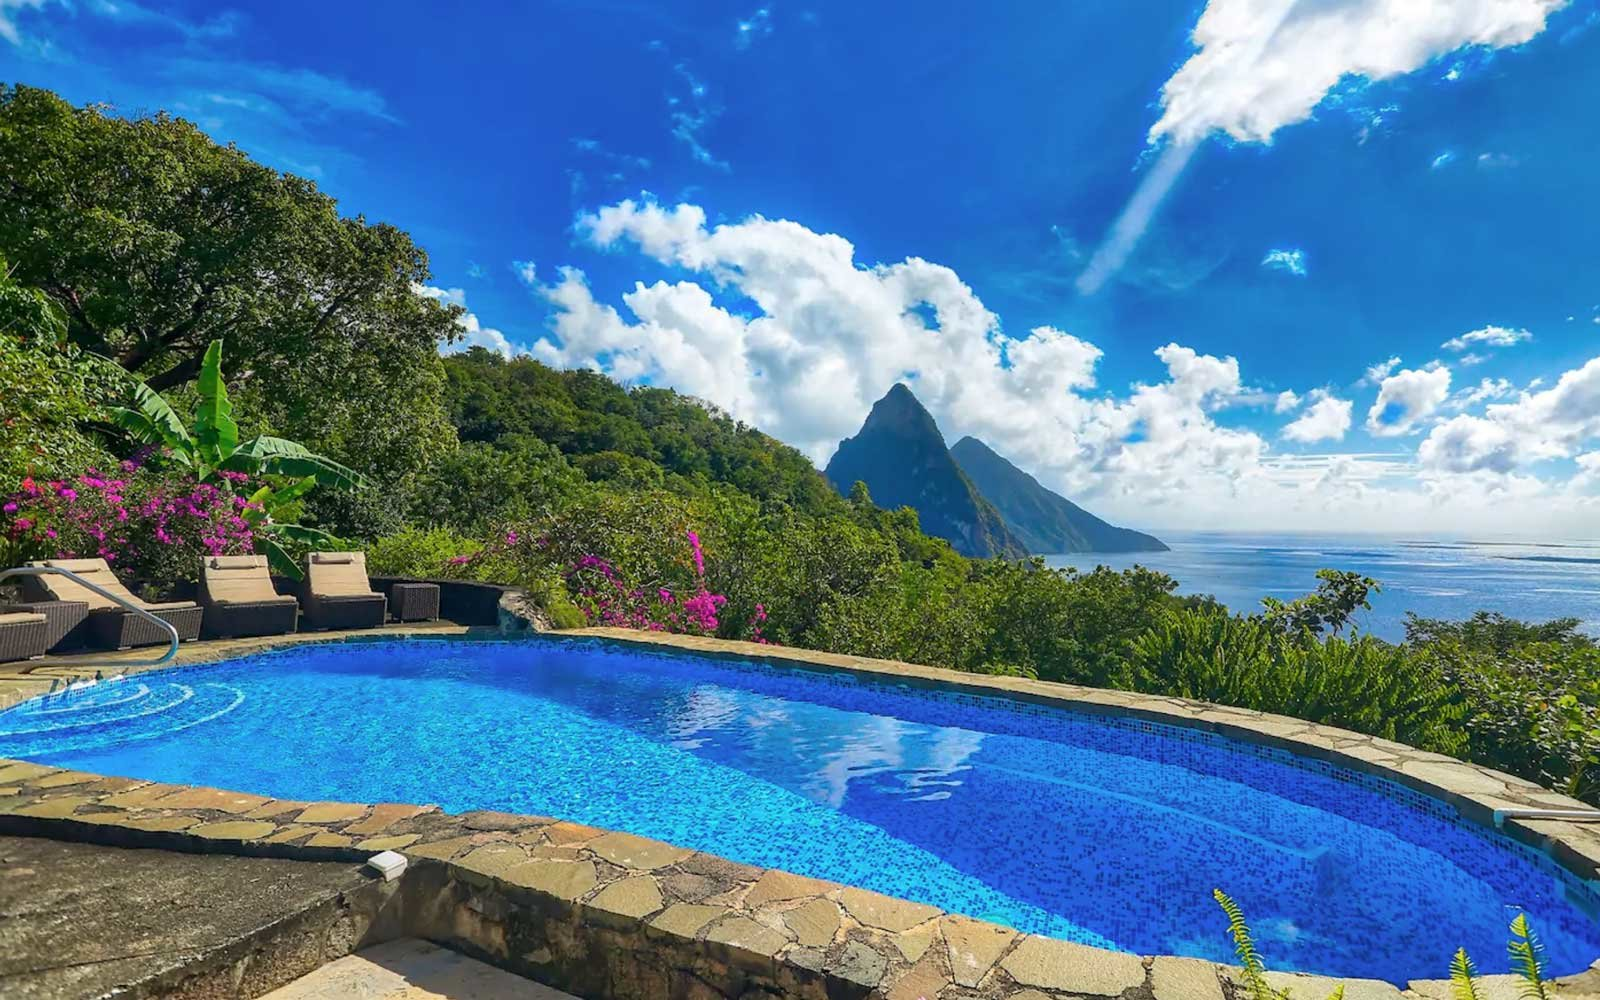 Villa Atabeyra luxury villa rental in St Lucia, available from ThirdHome